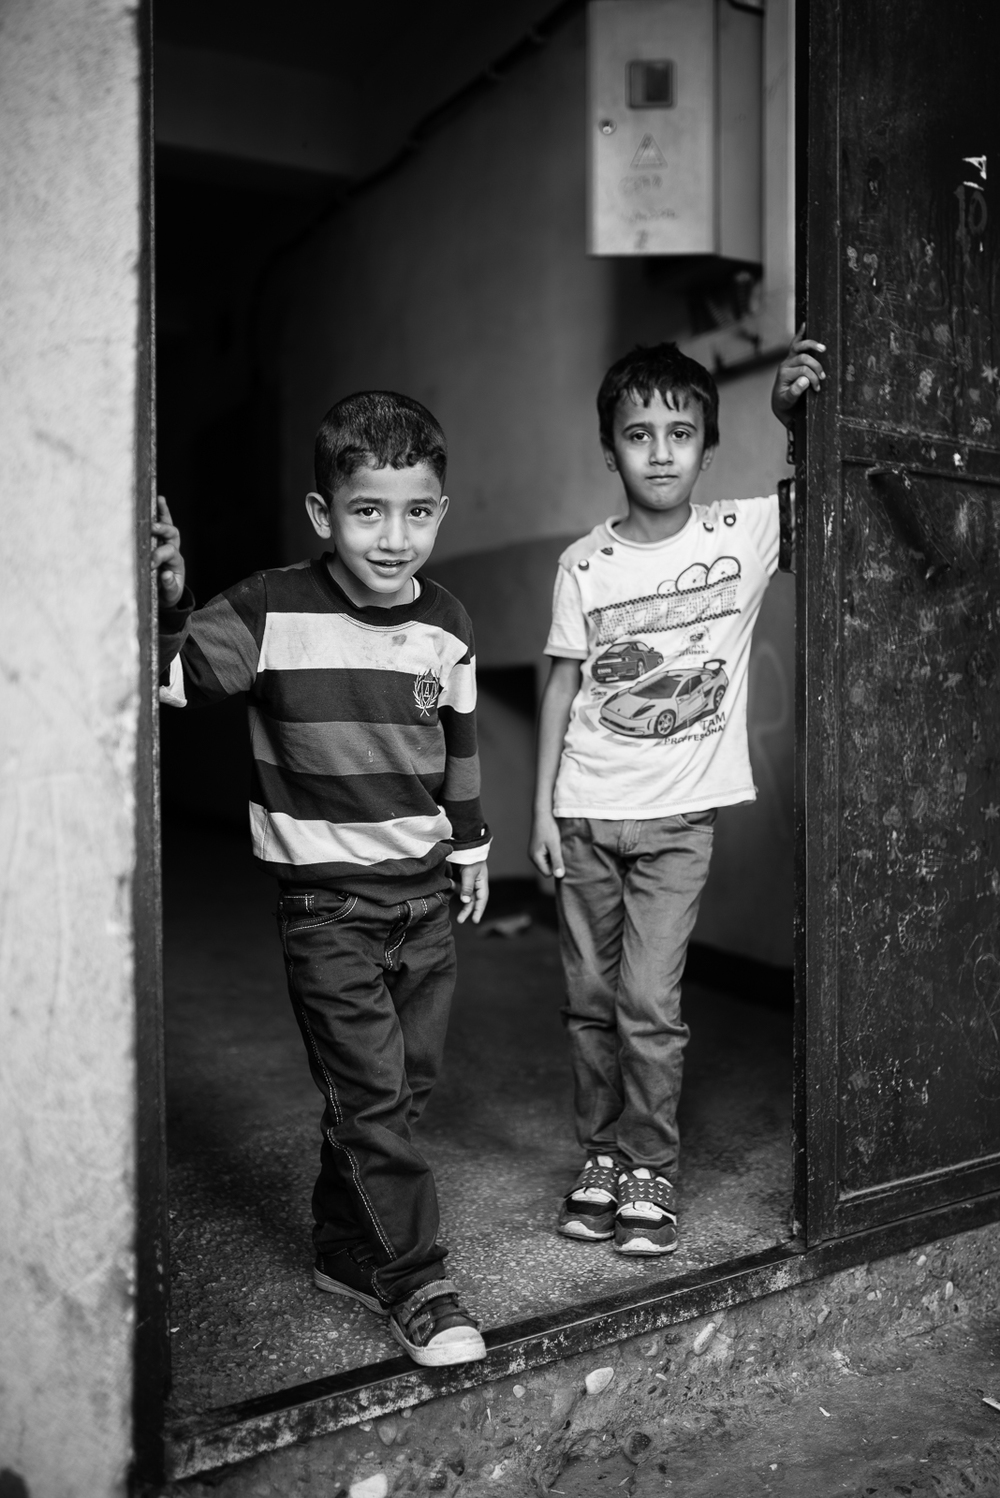 Friends. Dyarbakir (Turkey)